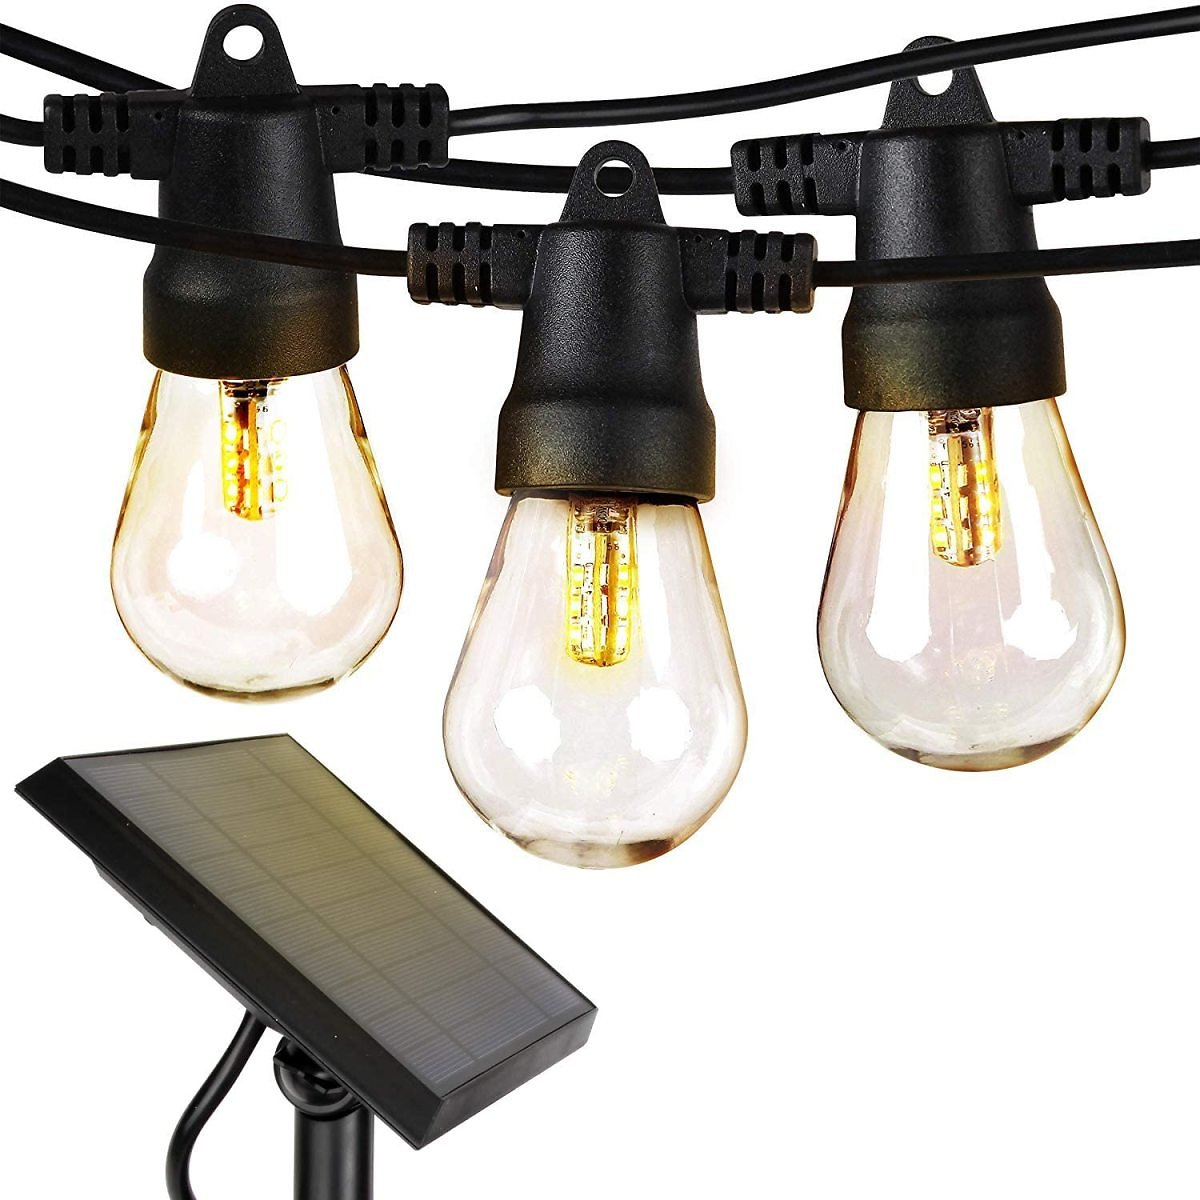 Brightech Ambience Pro - Waterproof, Solar Powered Outdoor String Lights - 27 Ft Vintage Edison Bulbs - 1W LEDs